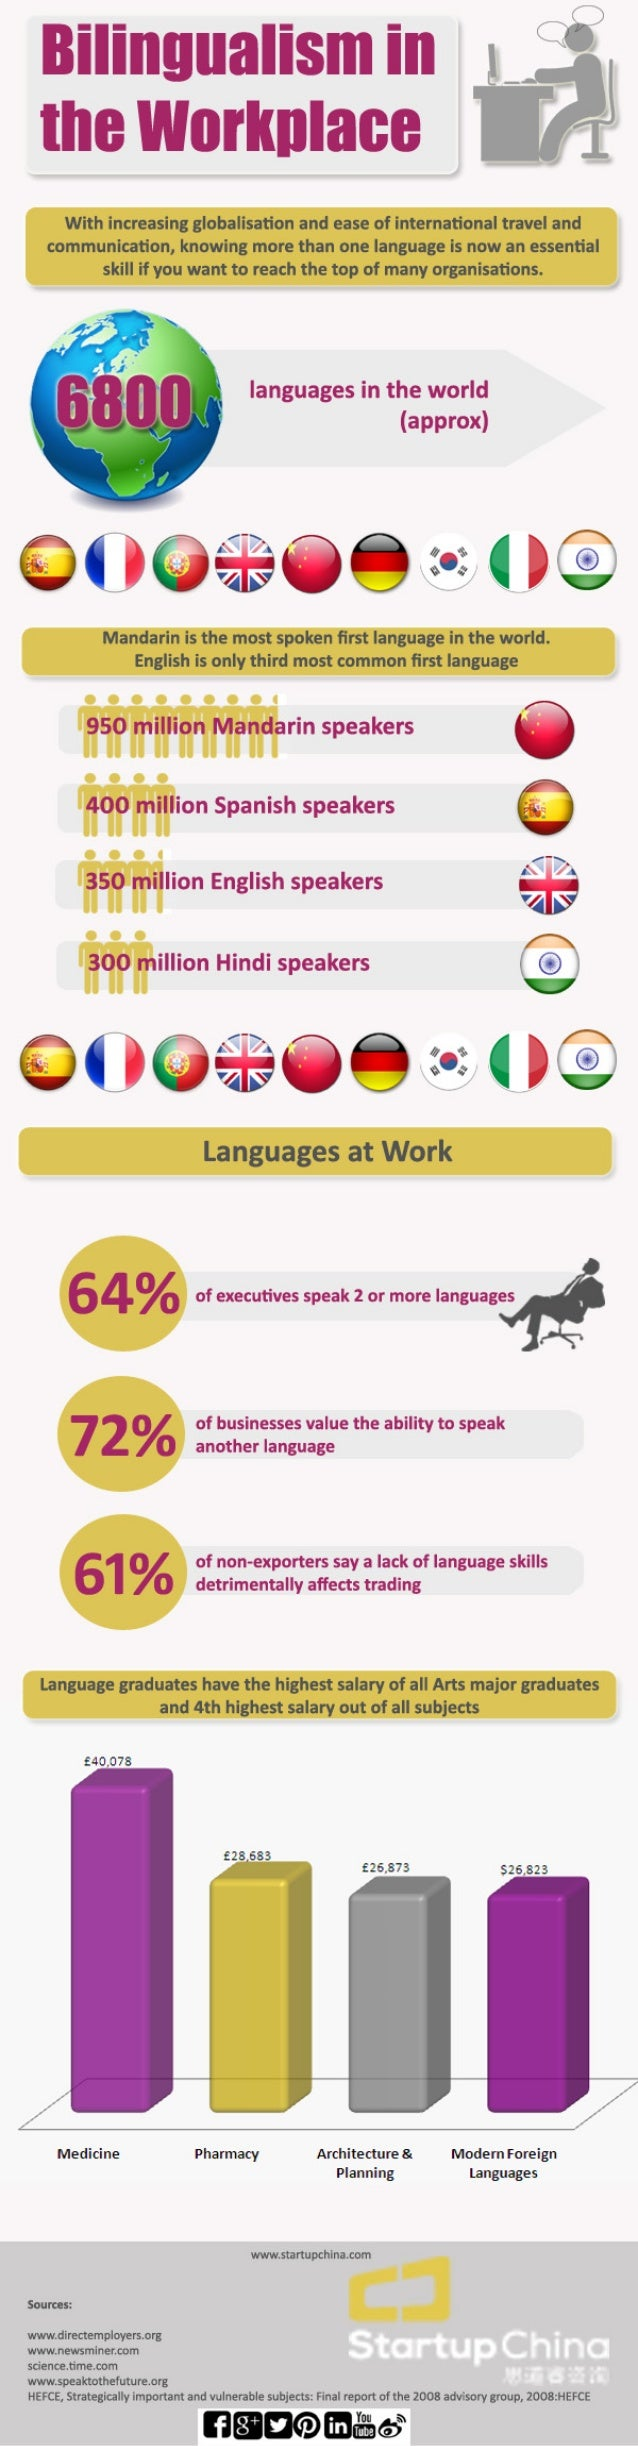 Bilingualism in the Workplace